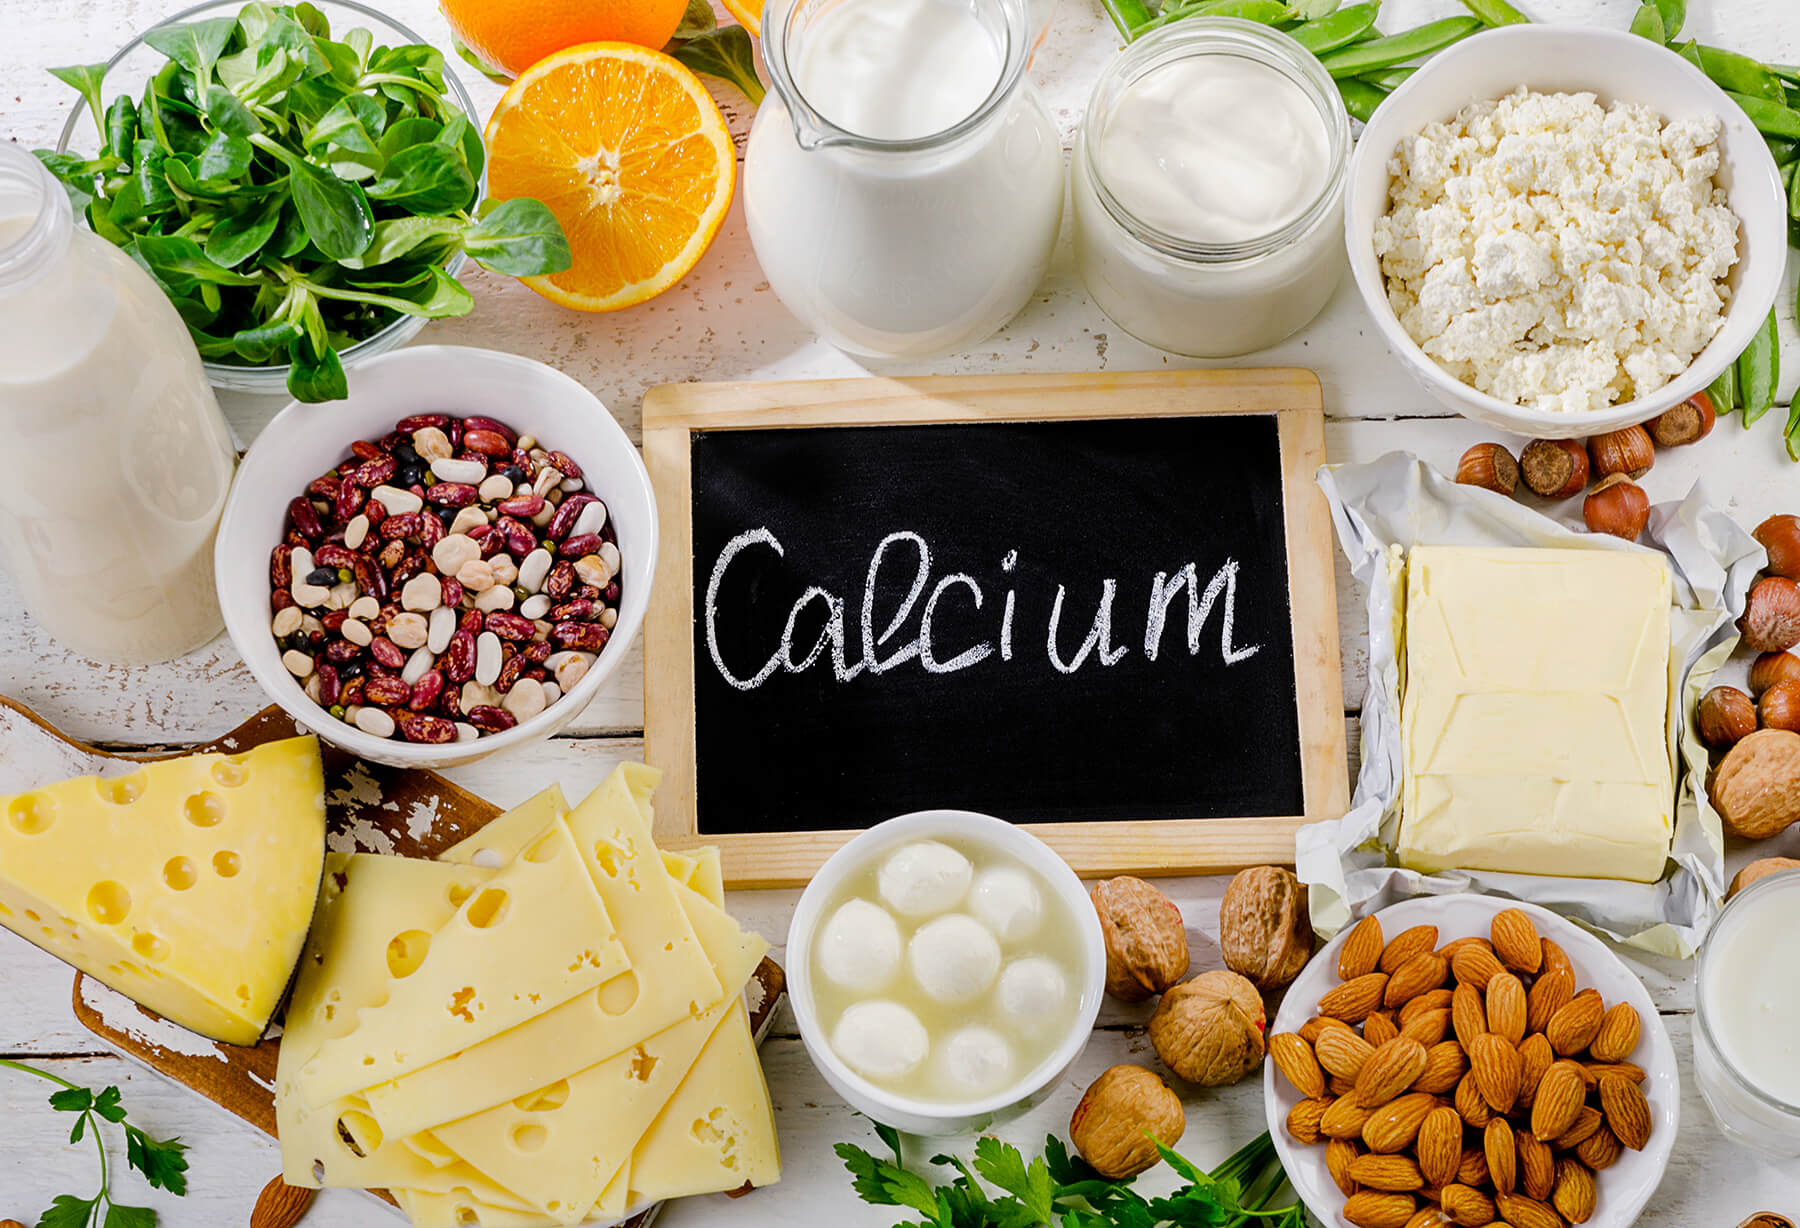 Calcium sign surrounded by calcium-rich foods